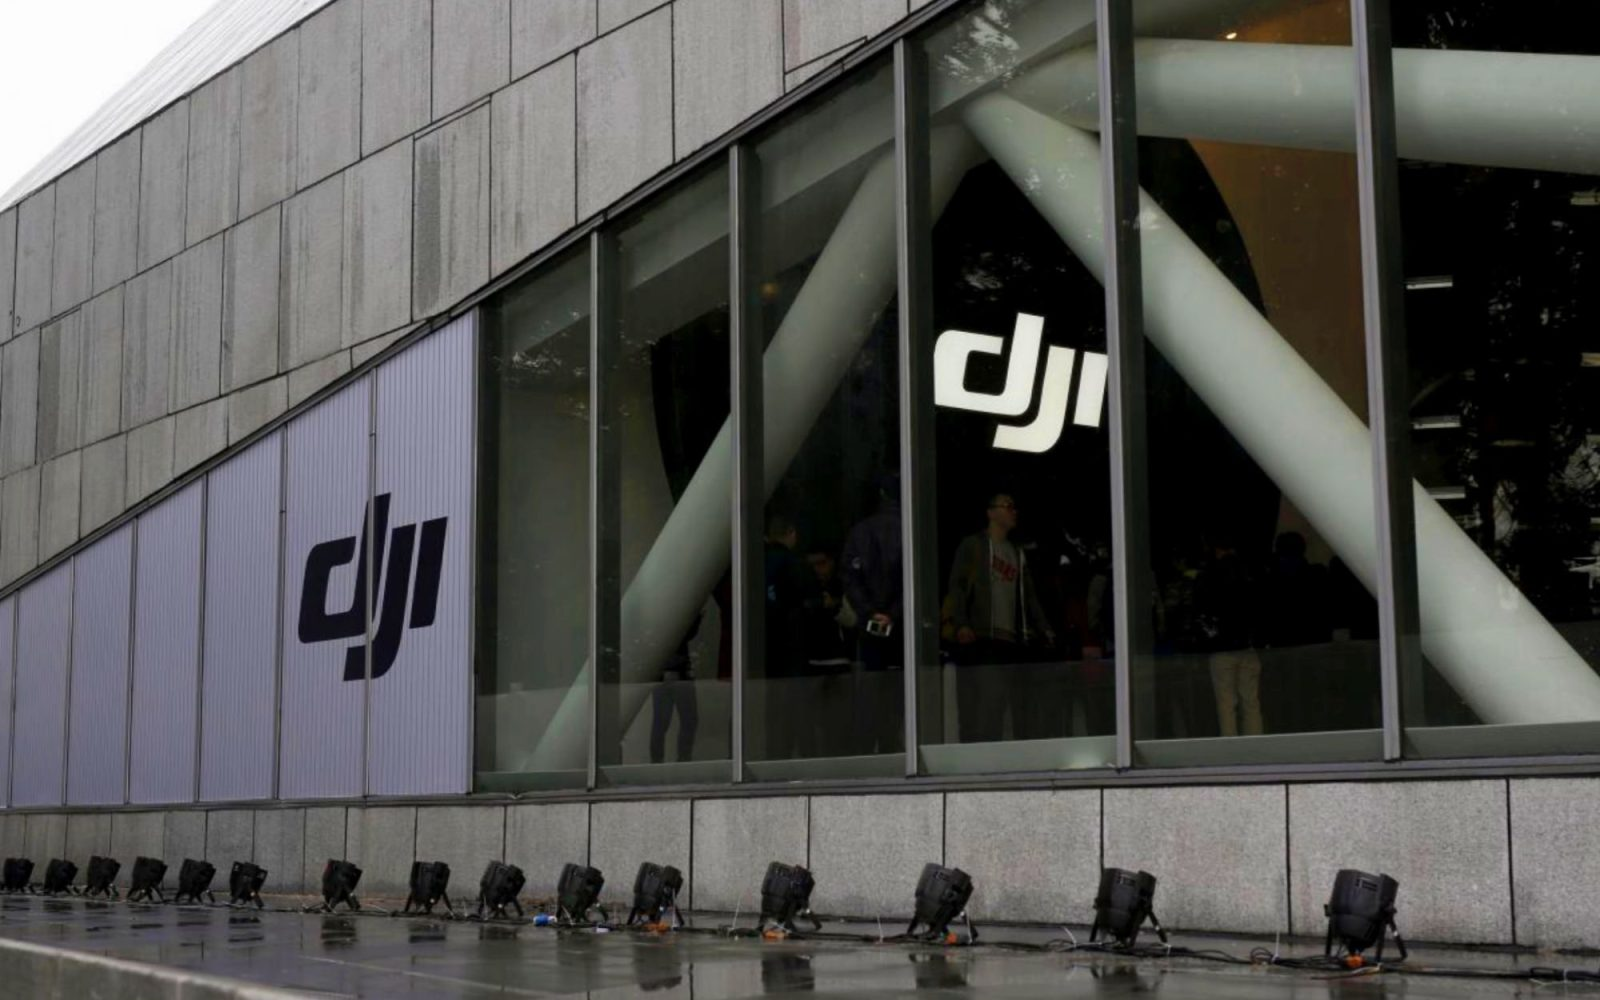 Dji Is Looking To Raise At Least 500 Million Ahead Of Planned Ipo